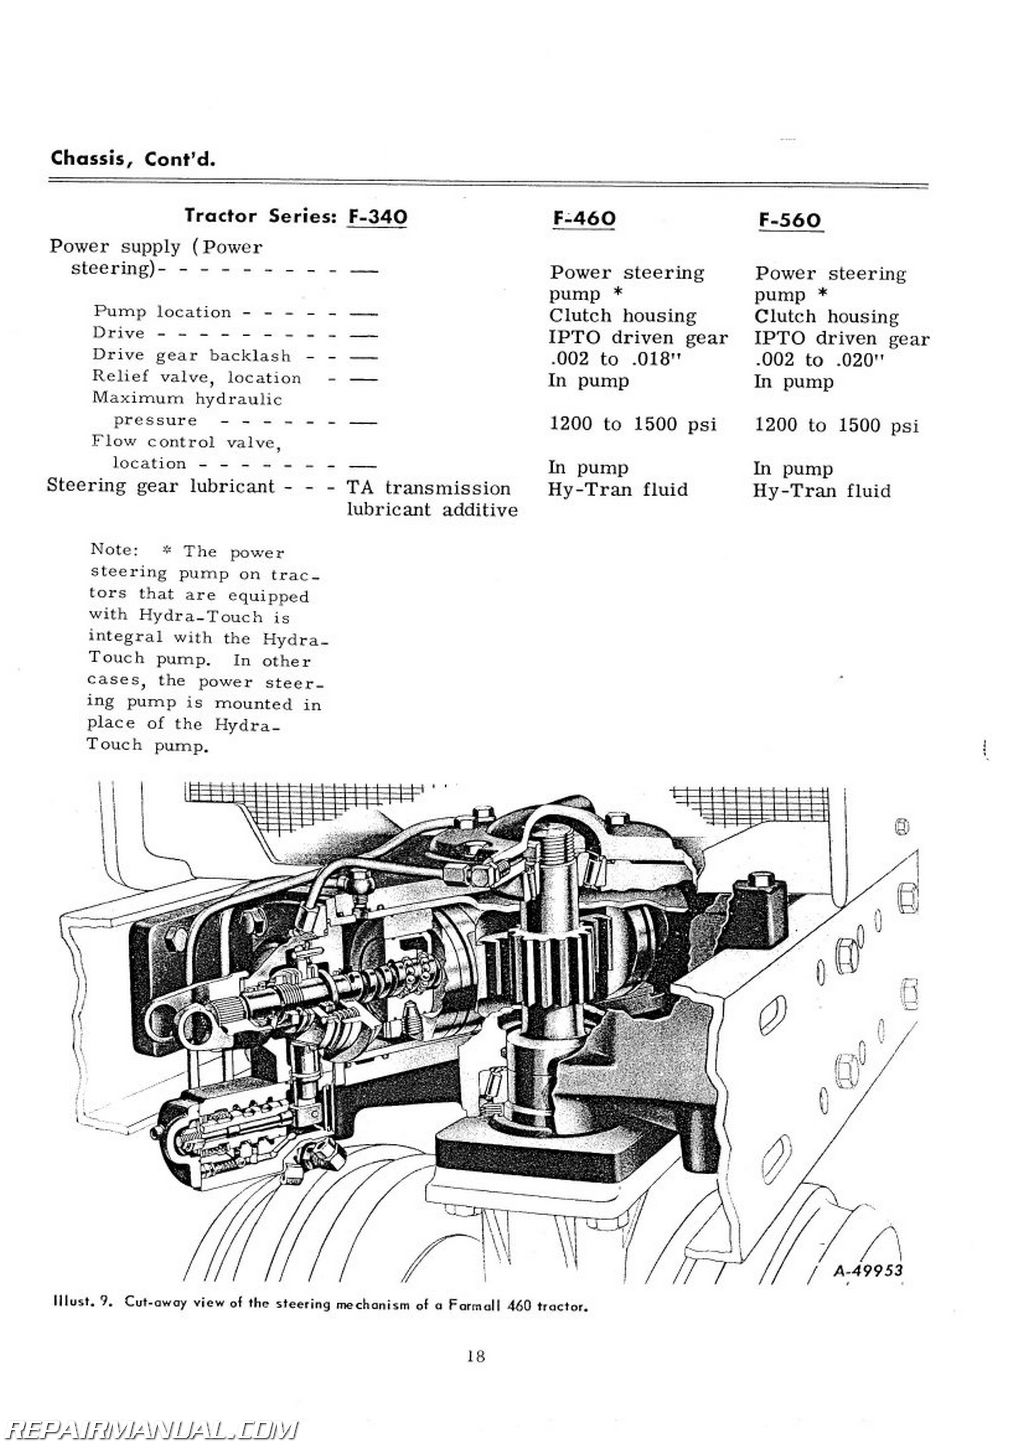 International Harvester 460 And 560 Factory Service Manual Js Ih S 460 560